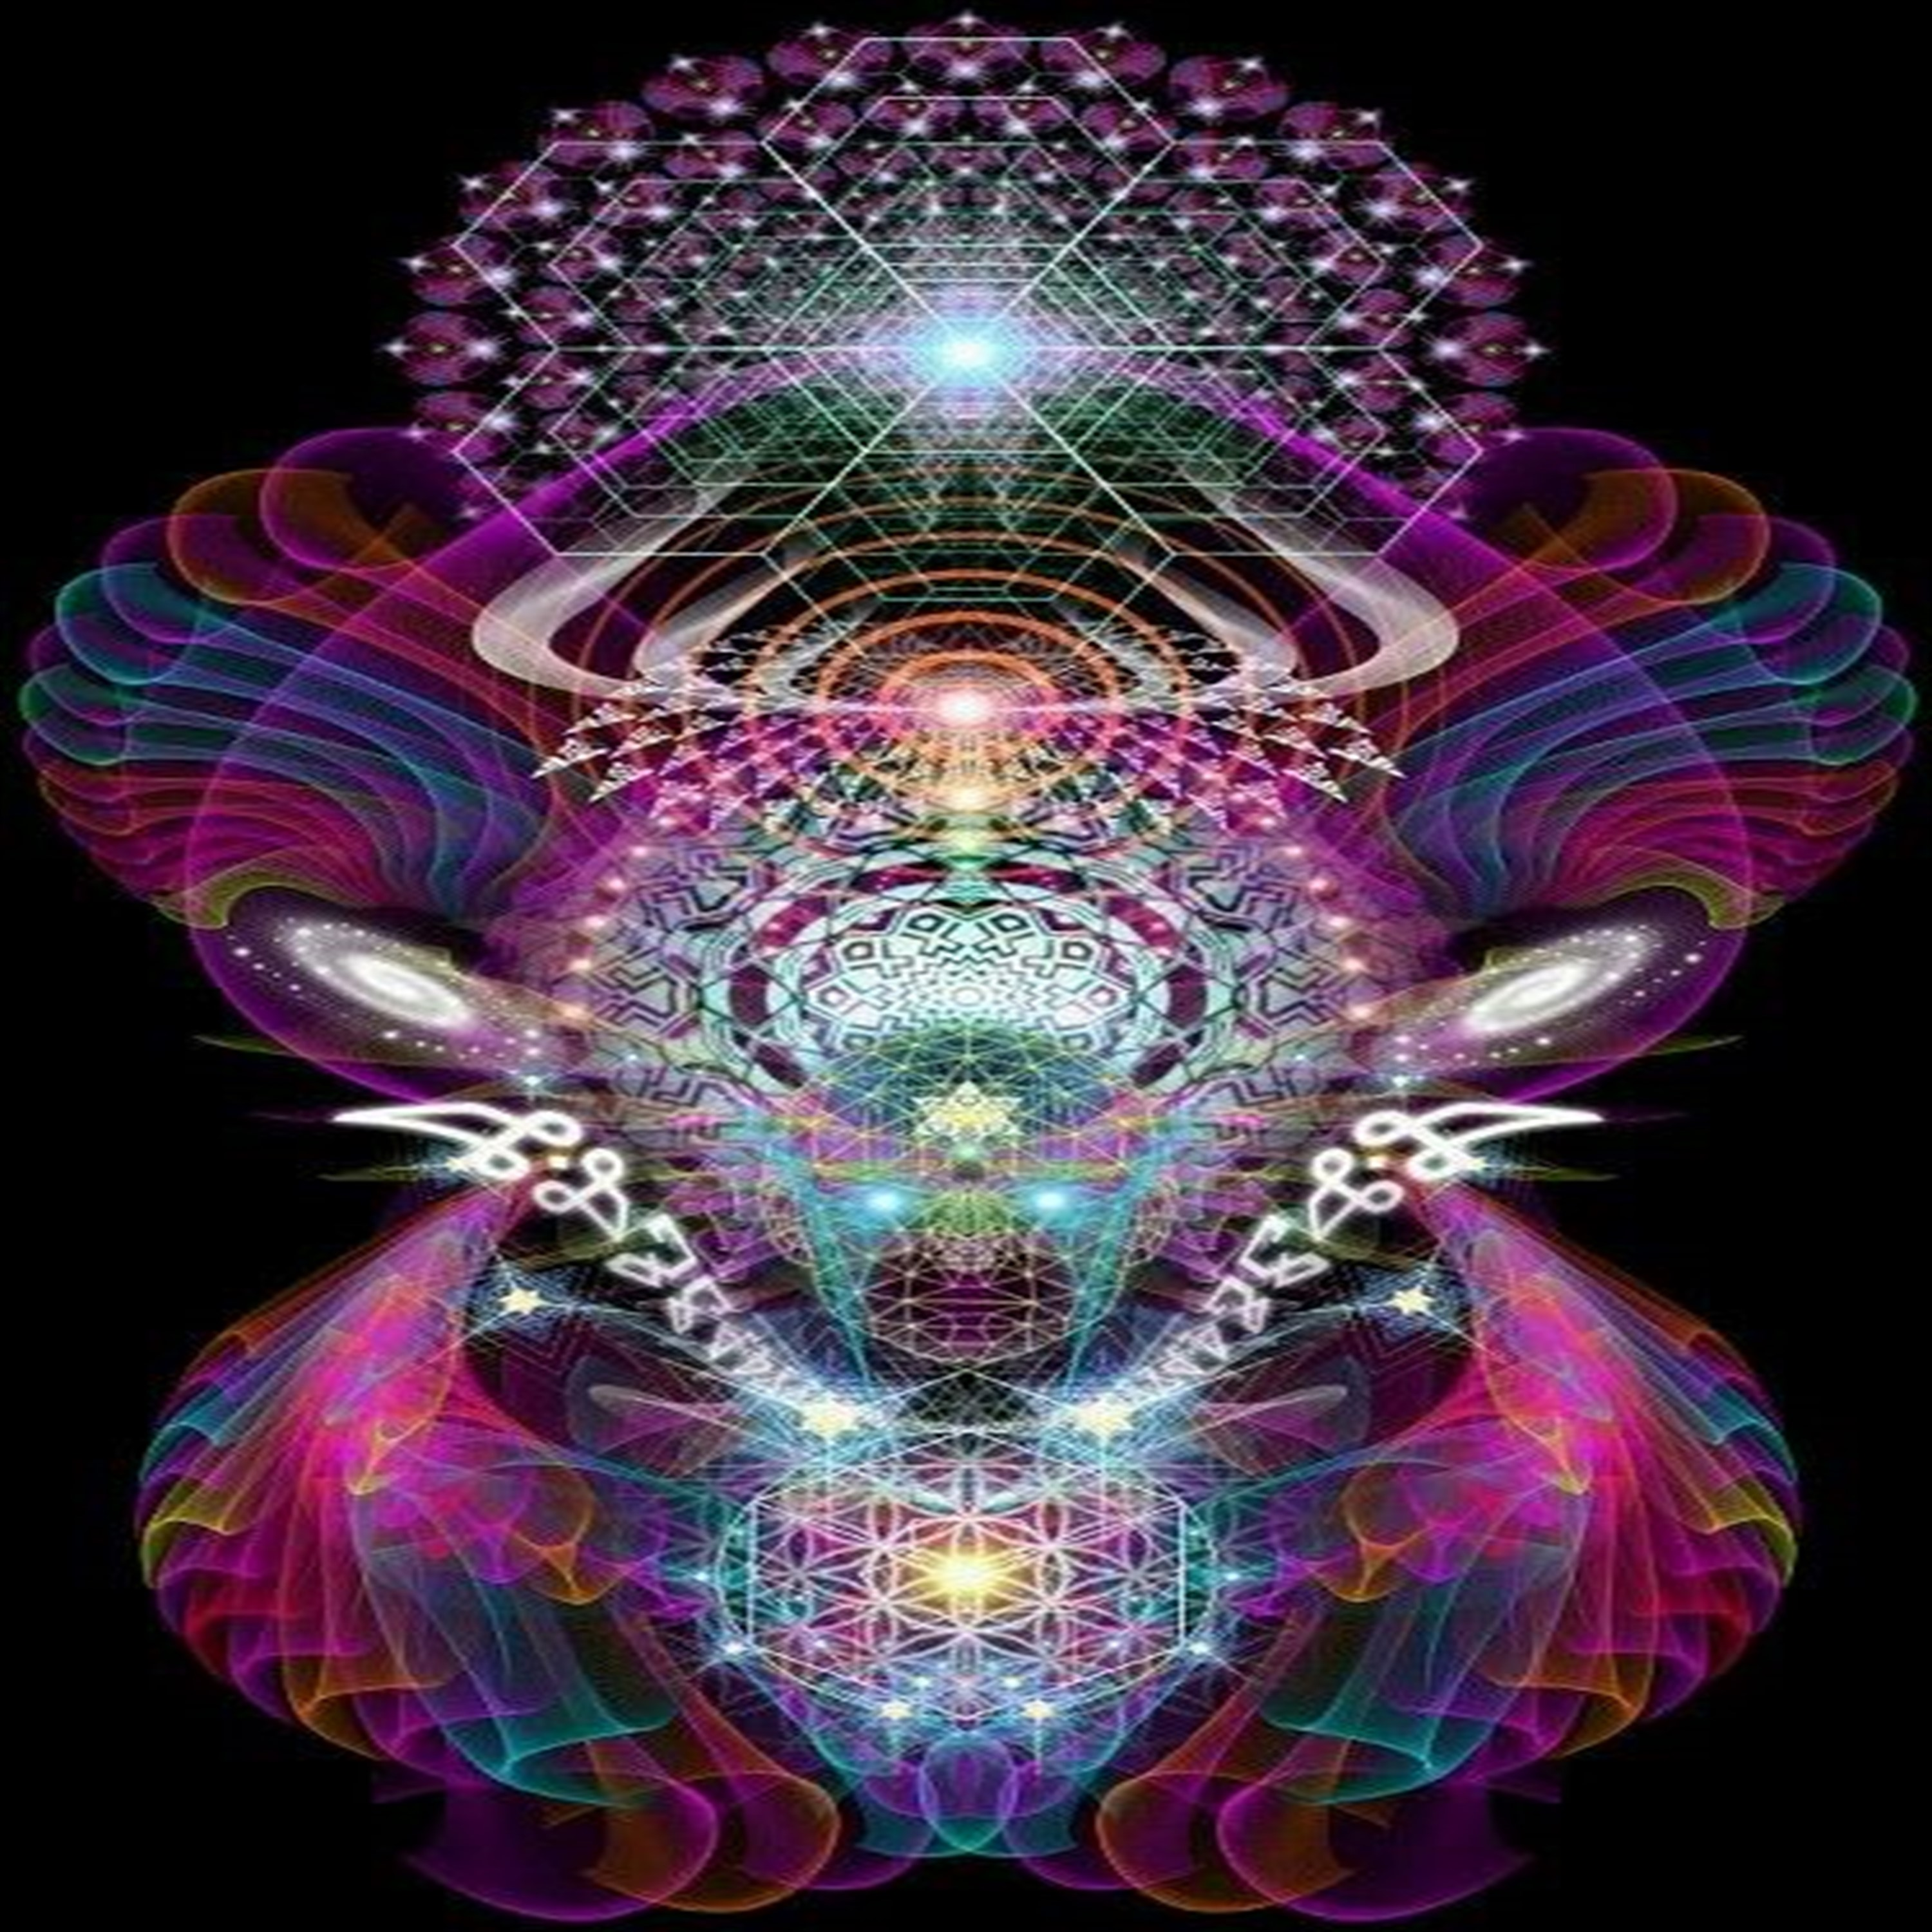 From The Sun Psy Trance Mix